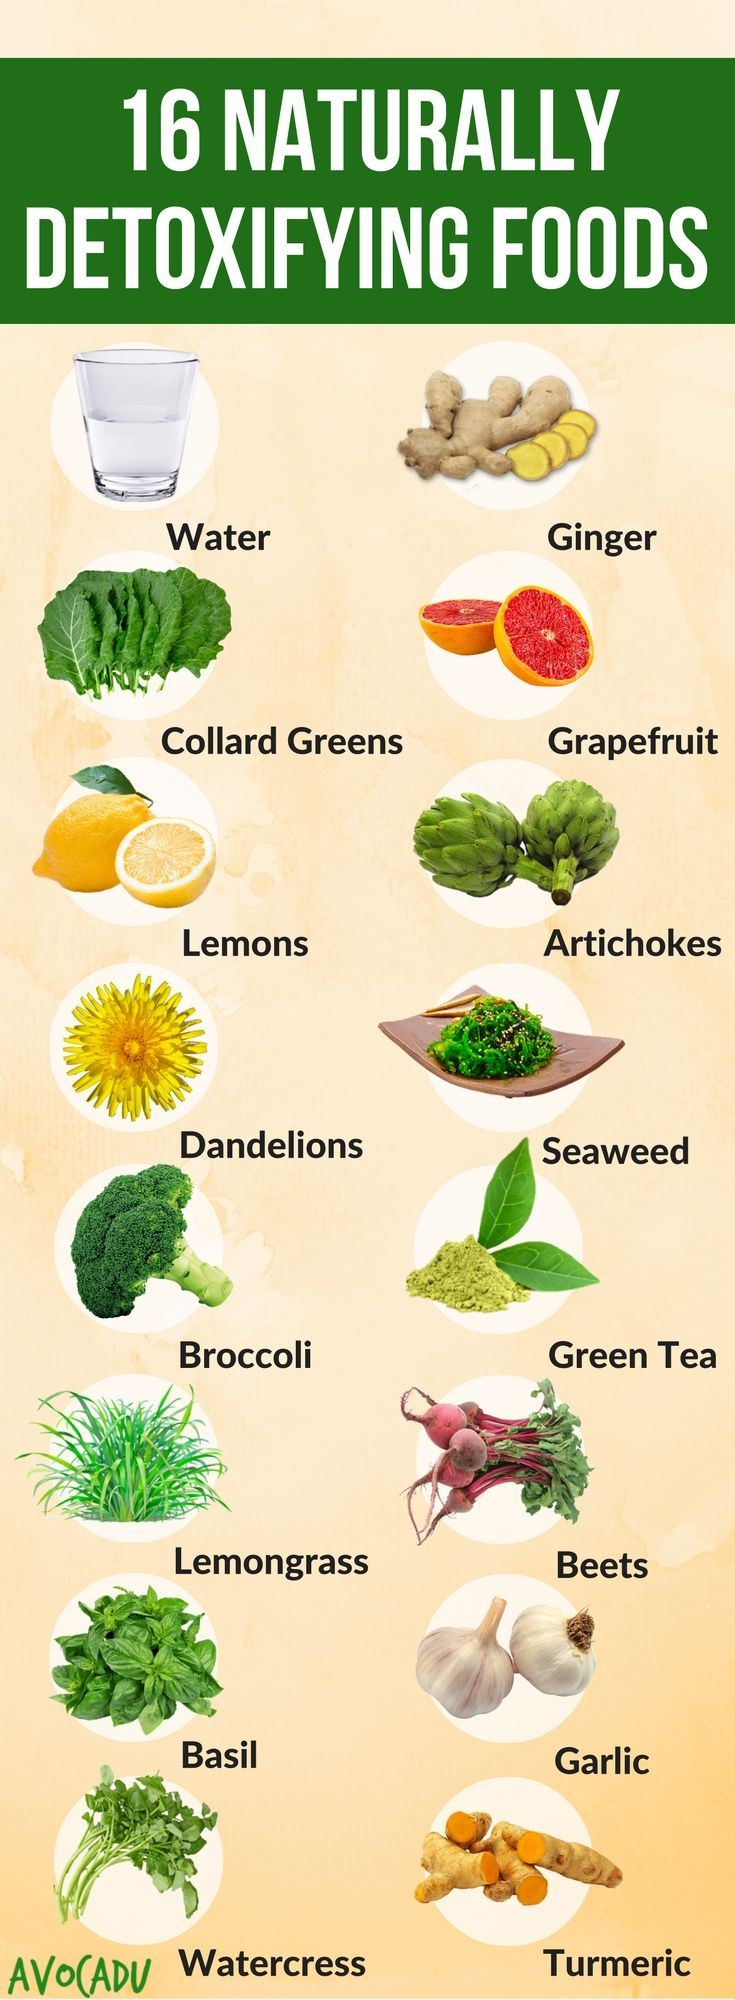 Foods Good For Detoxing The Body